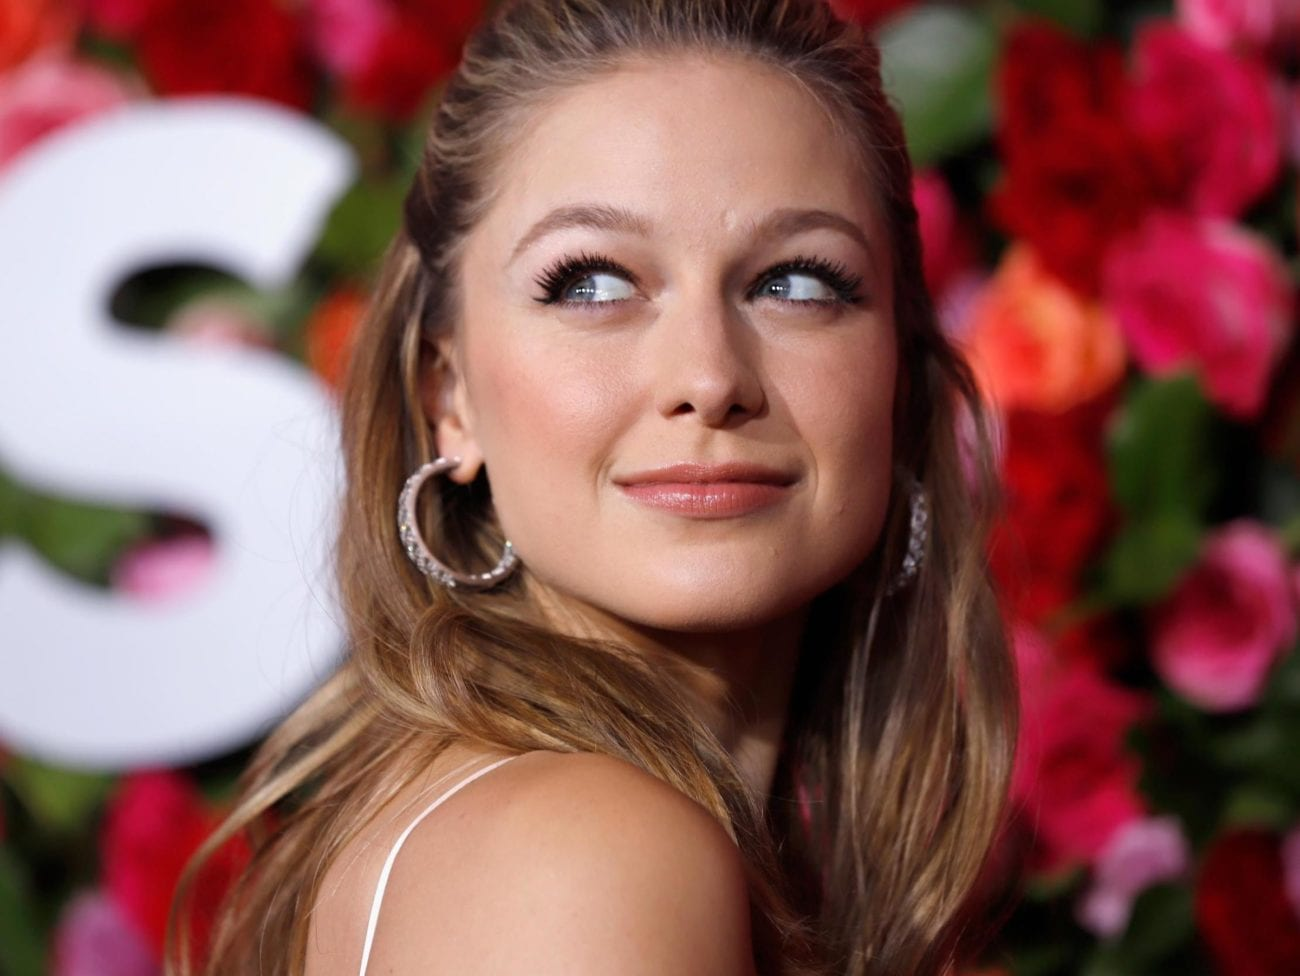 'Supergirl' star Melissa Benoist clearly chose to face the darkest of days with grace, empathy, and love. Here are more 'Supergirl' badasses.